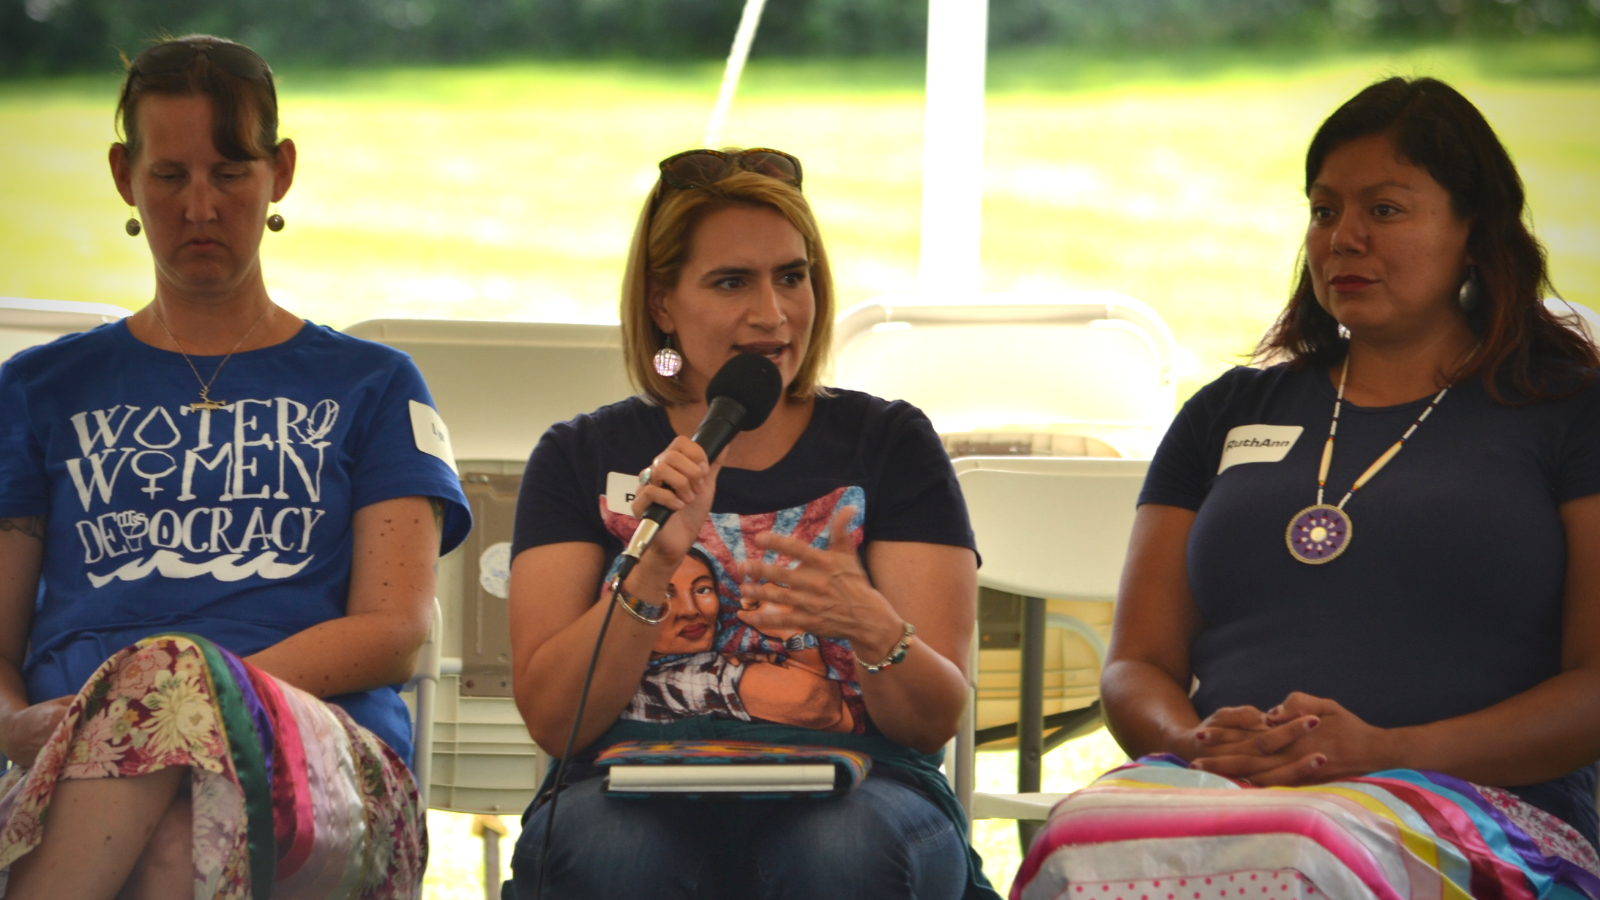 A panel of speakers at Water, Women & Democracy